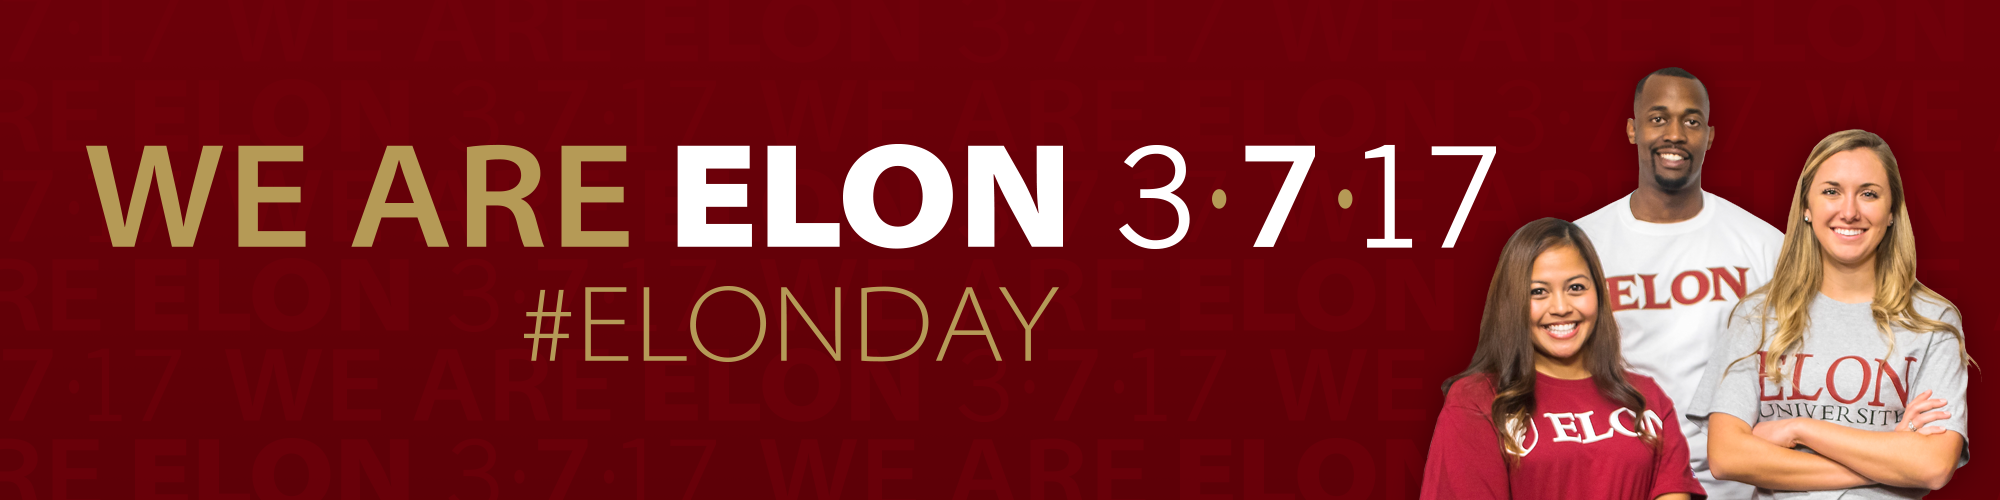 We Are Elon 3-7-17 #ElonDay